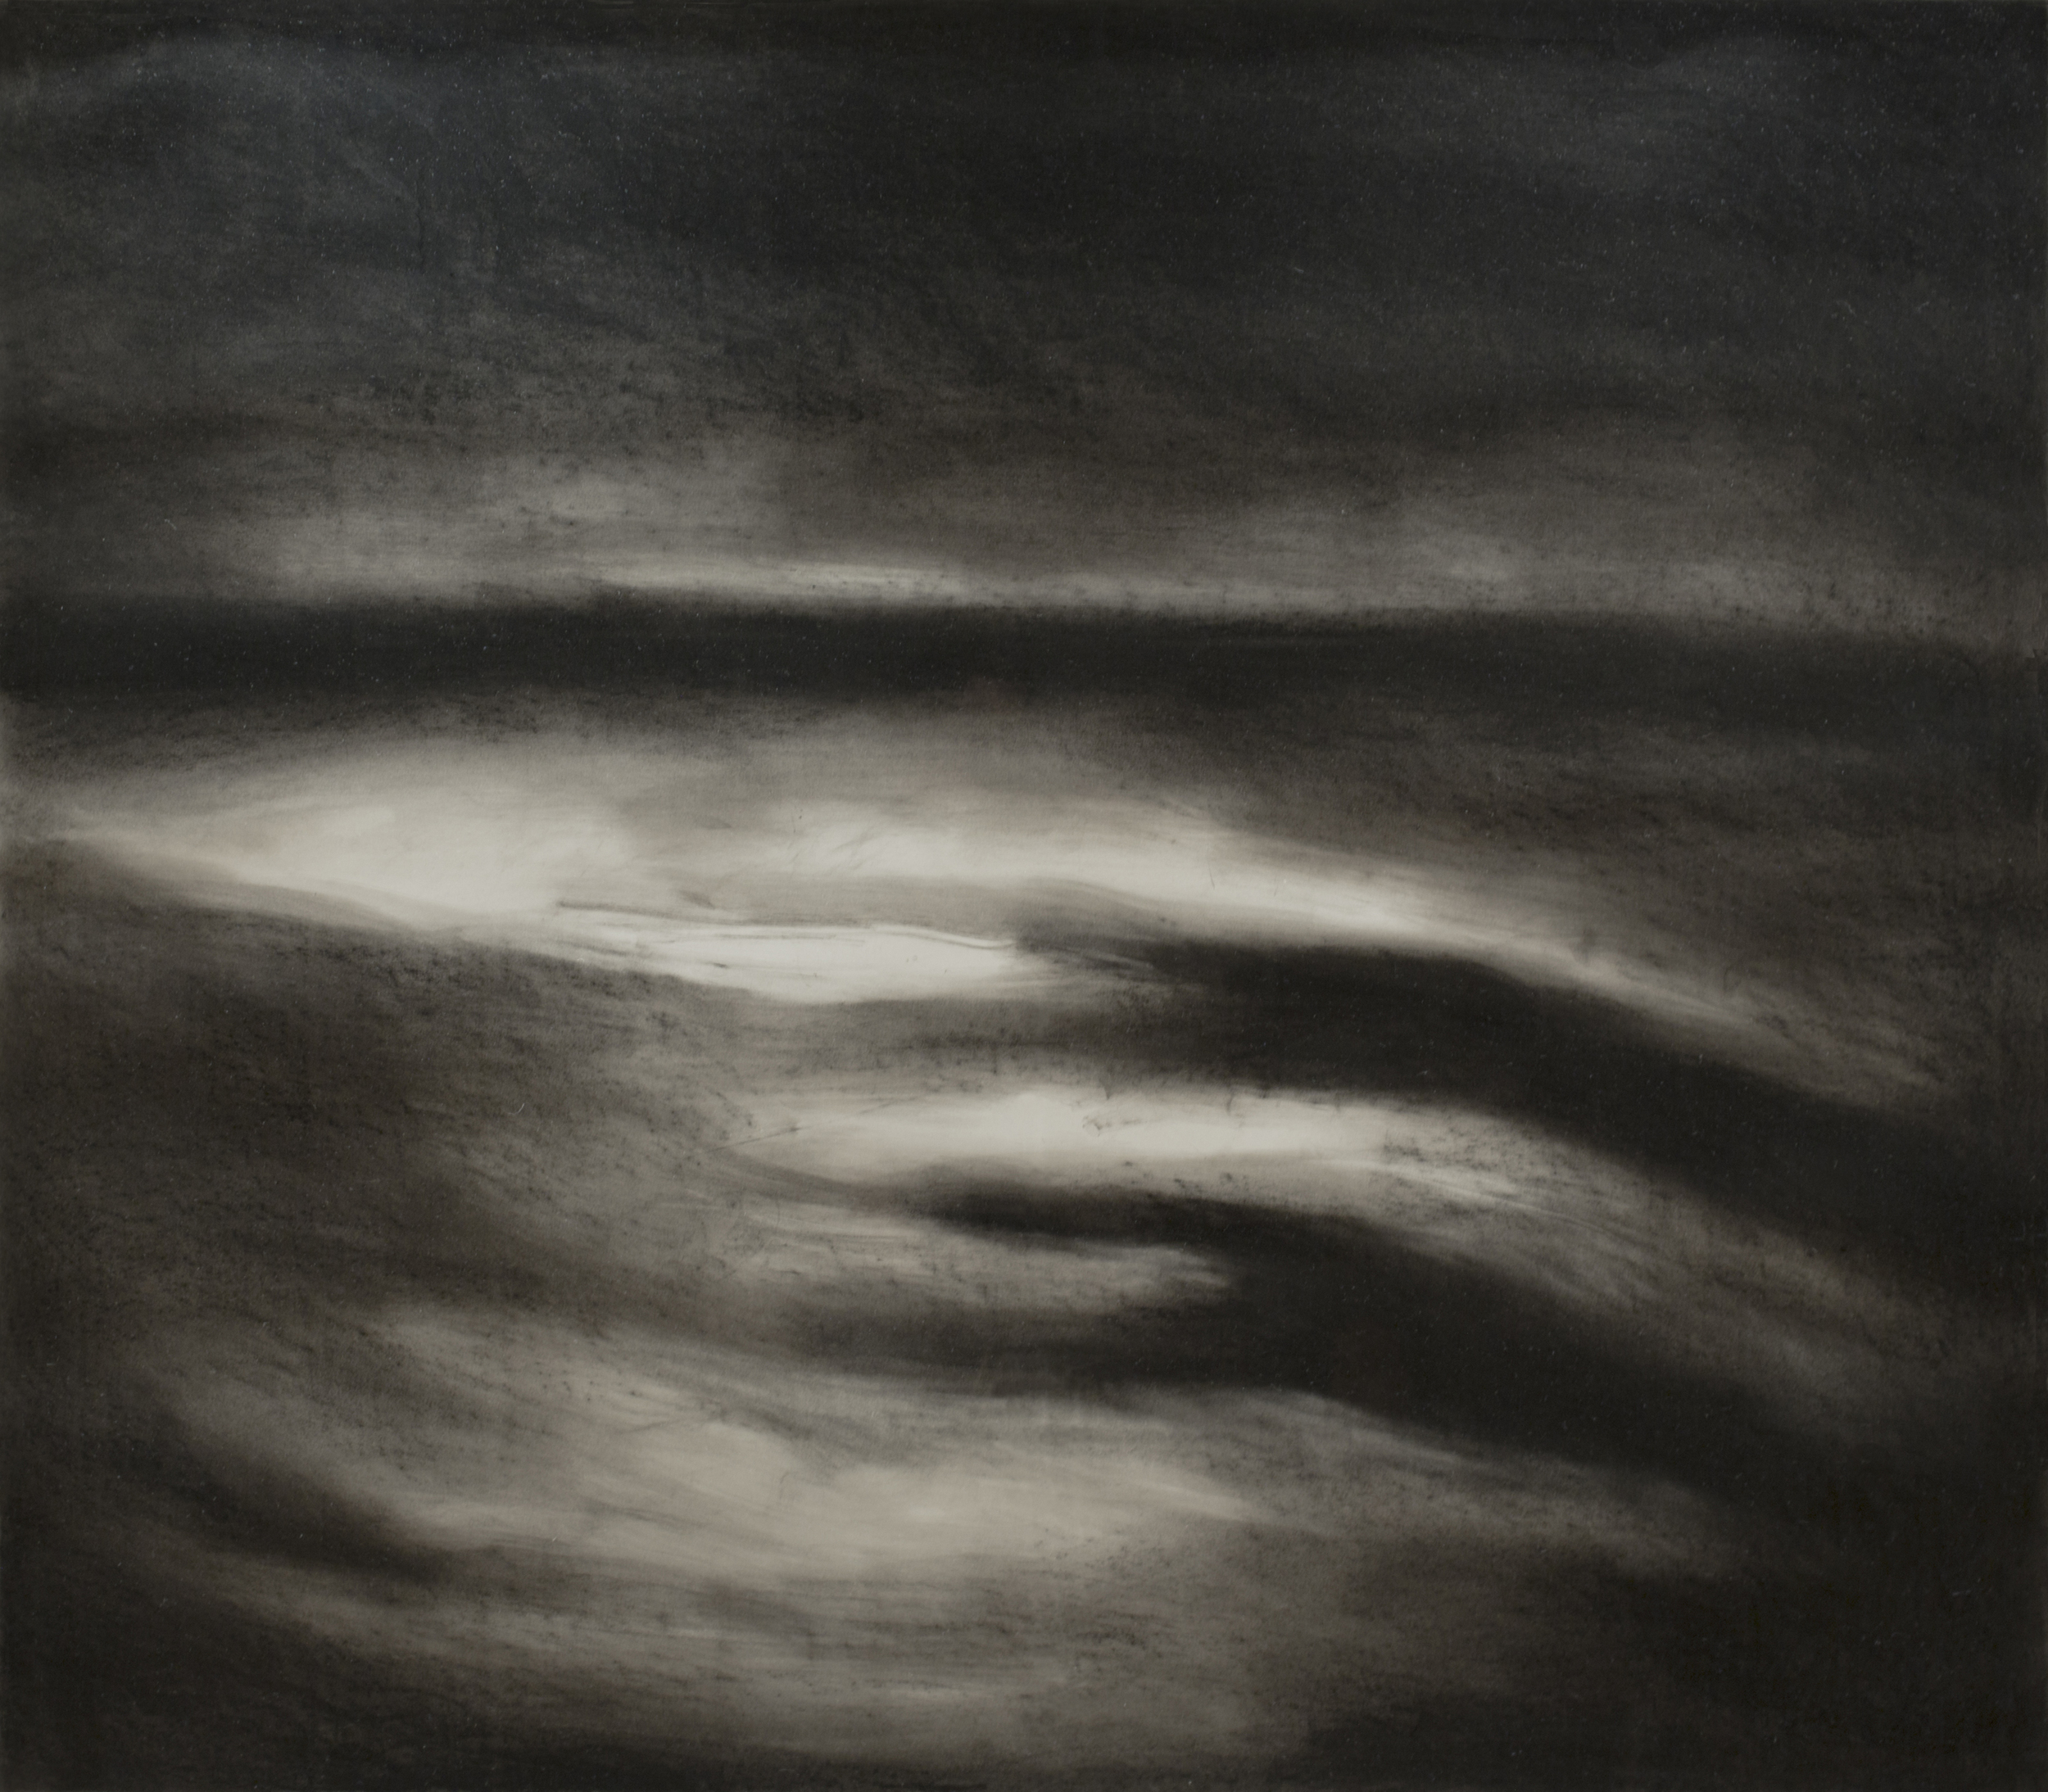 MOONLESS NIGHT RECEDING TIDE, charcoal, 61.5 x 69 inches; © 1990, Michael Kirk, all rights reserved